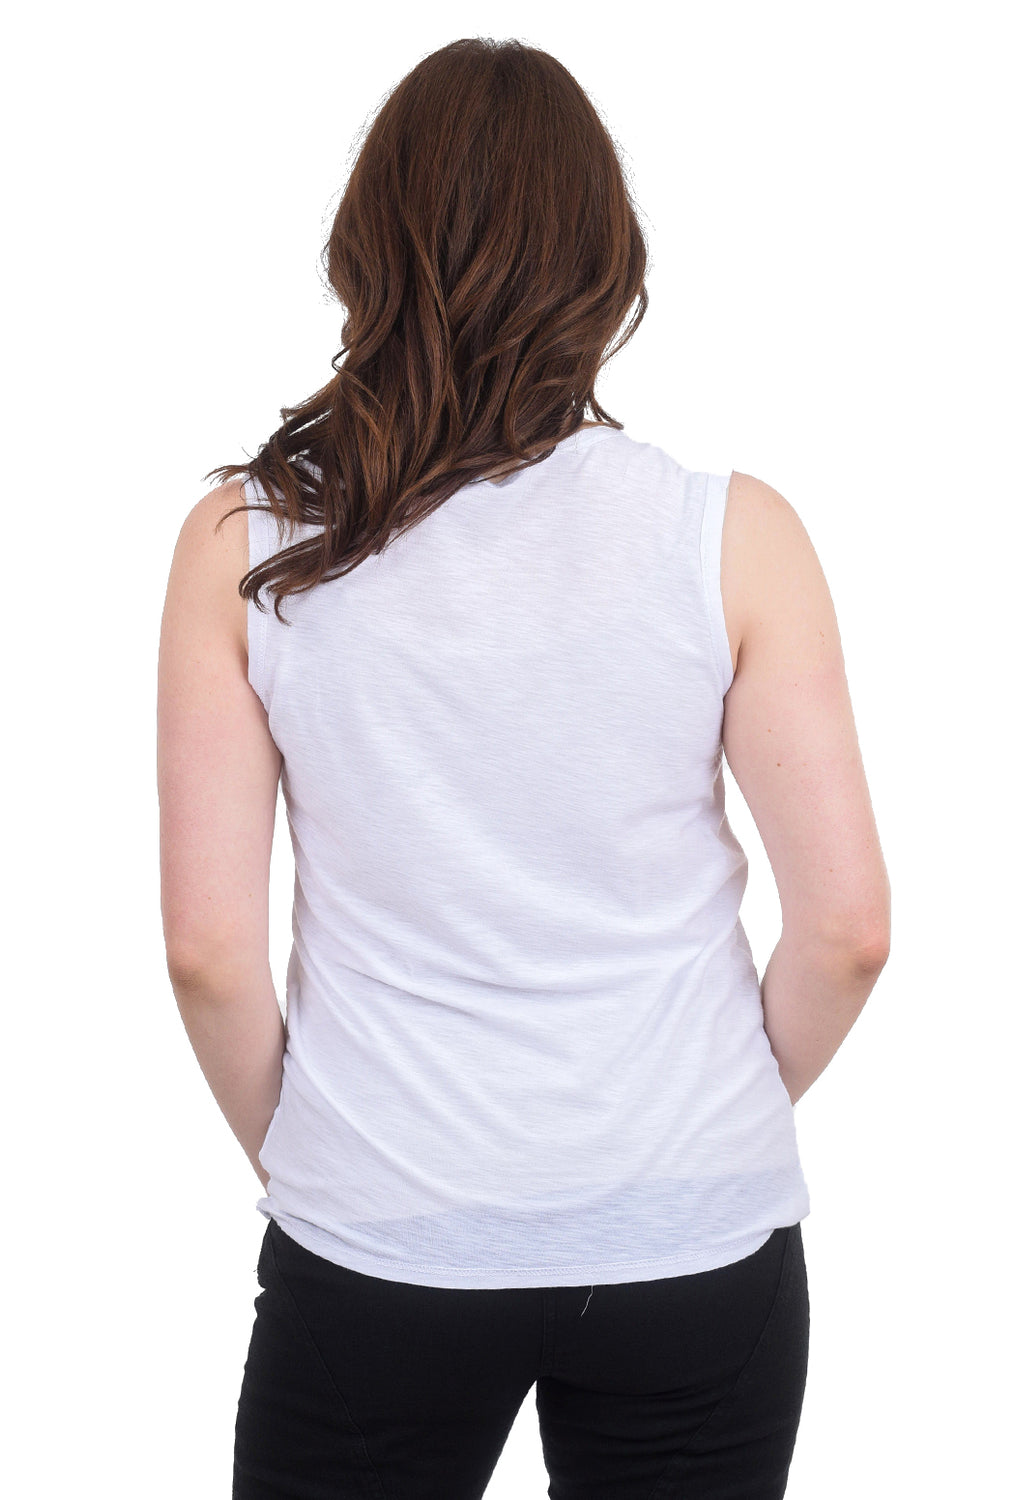 Commune Core Muscle Tank, White